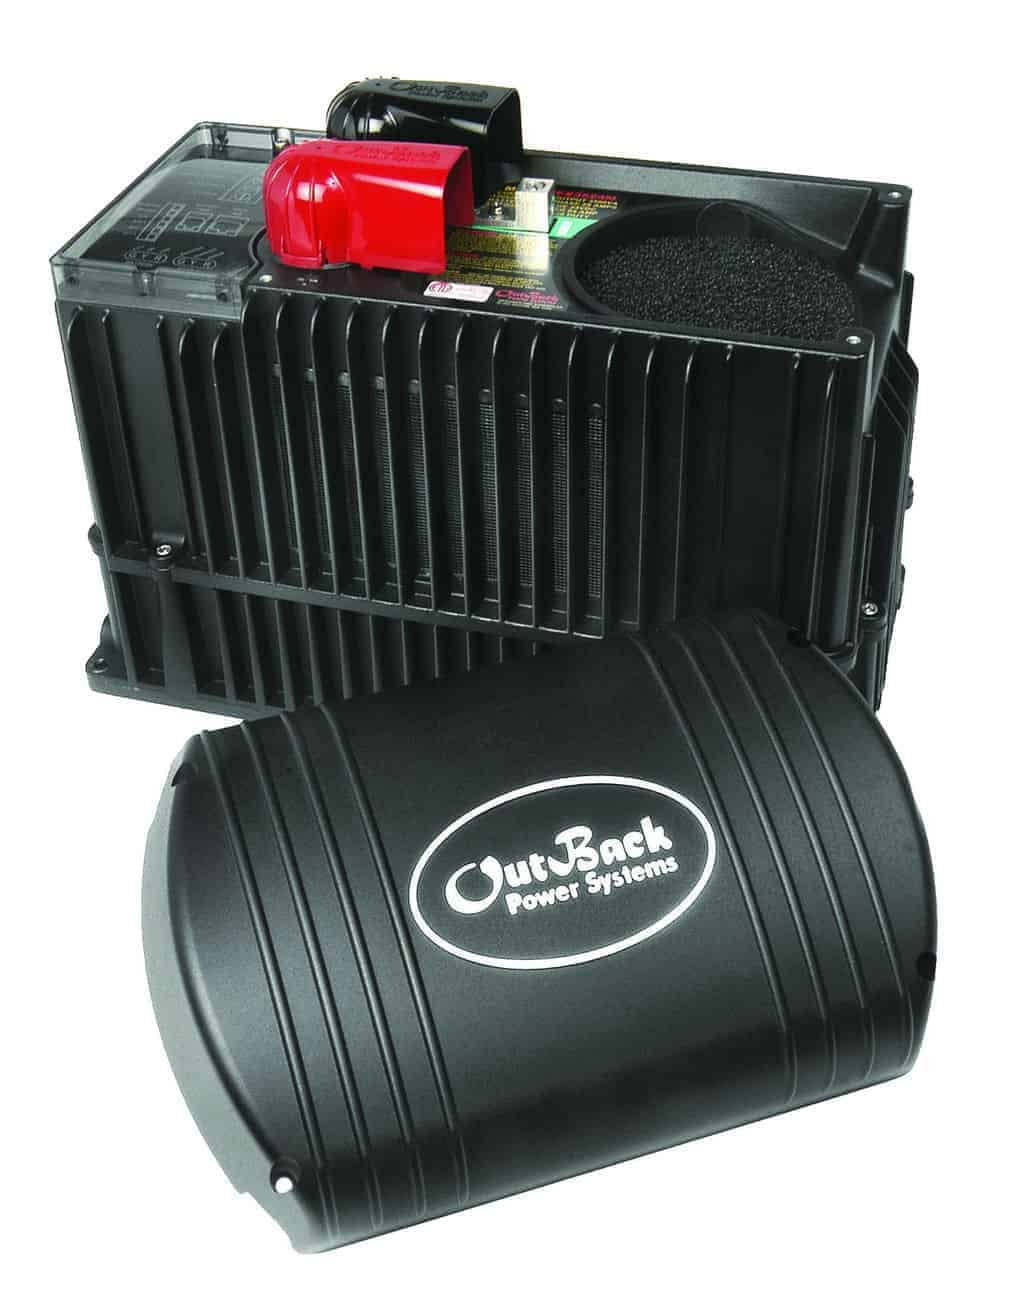 Outback Power VFXR2812A Inverter